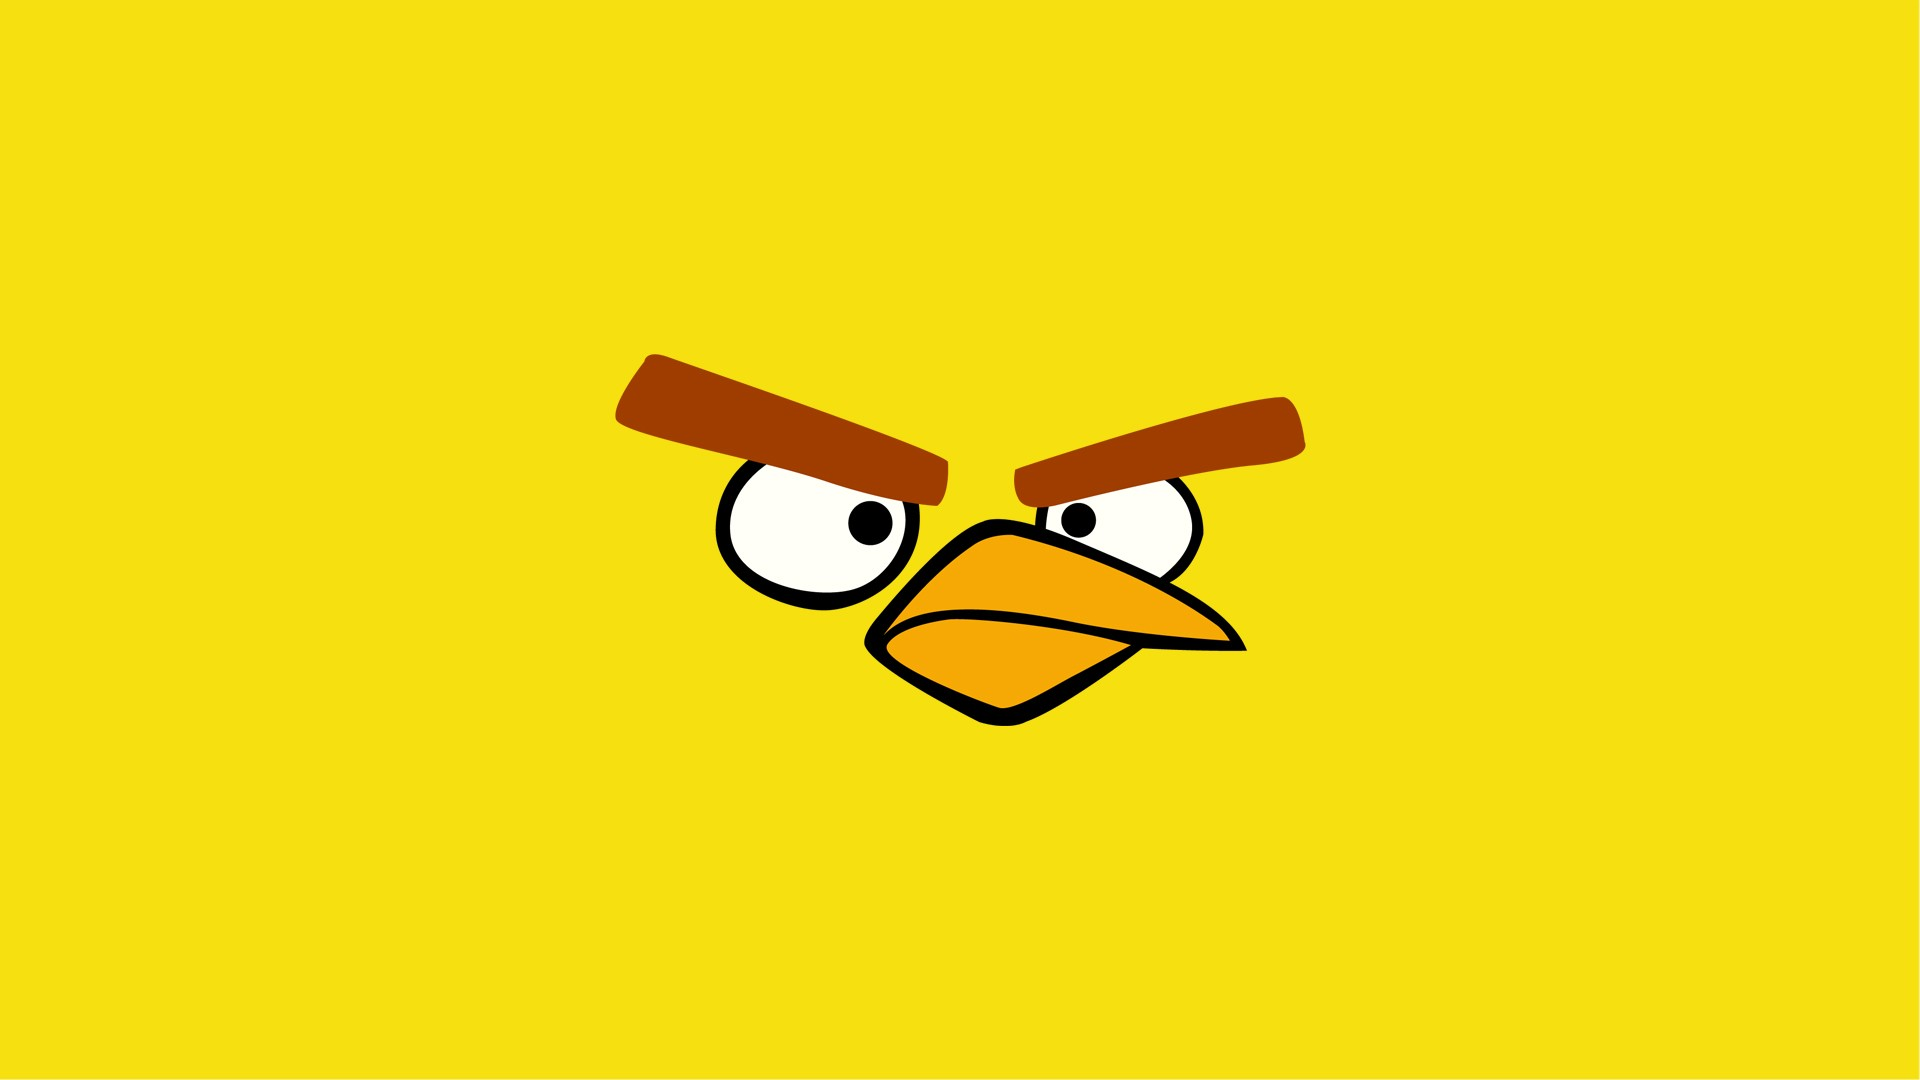 Angry Birds Wallpaper Hd For Pc 1920x1080 Wallpaper Teahub Io